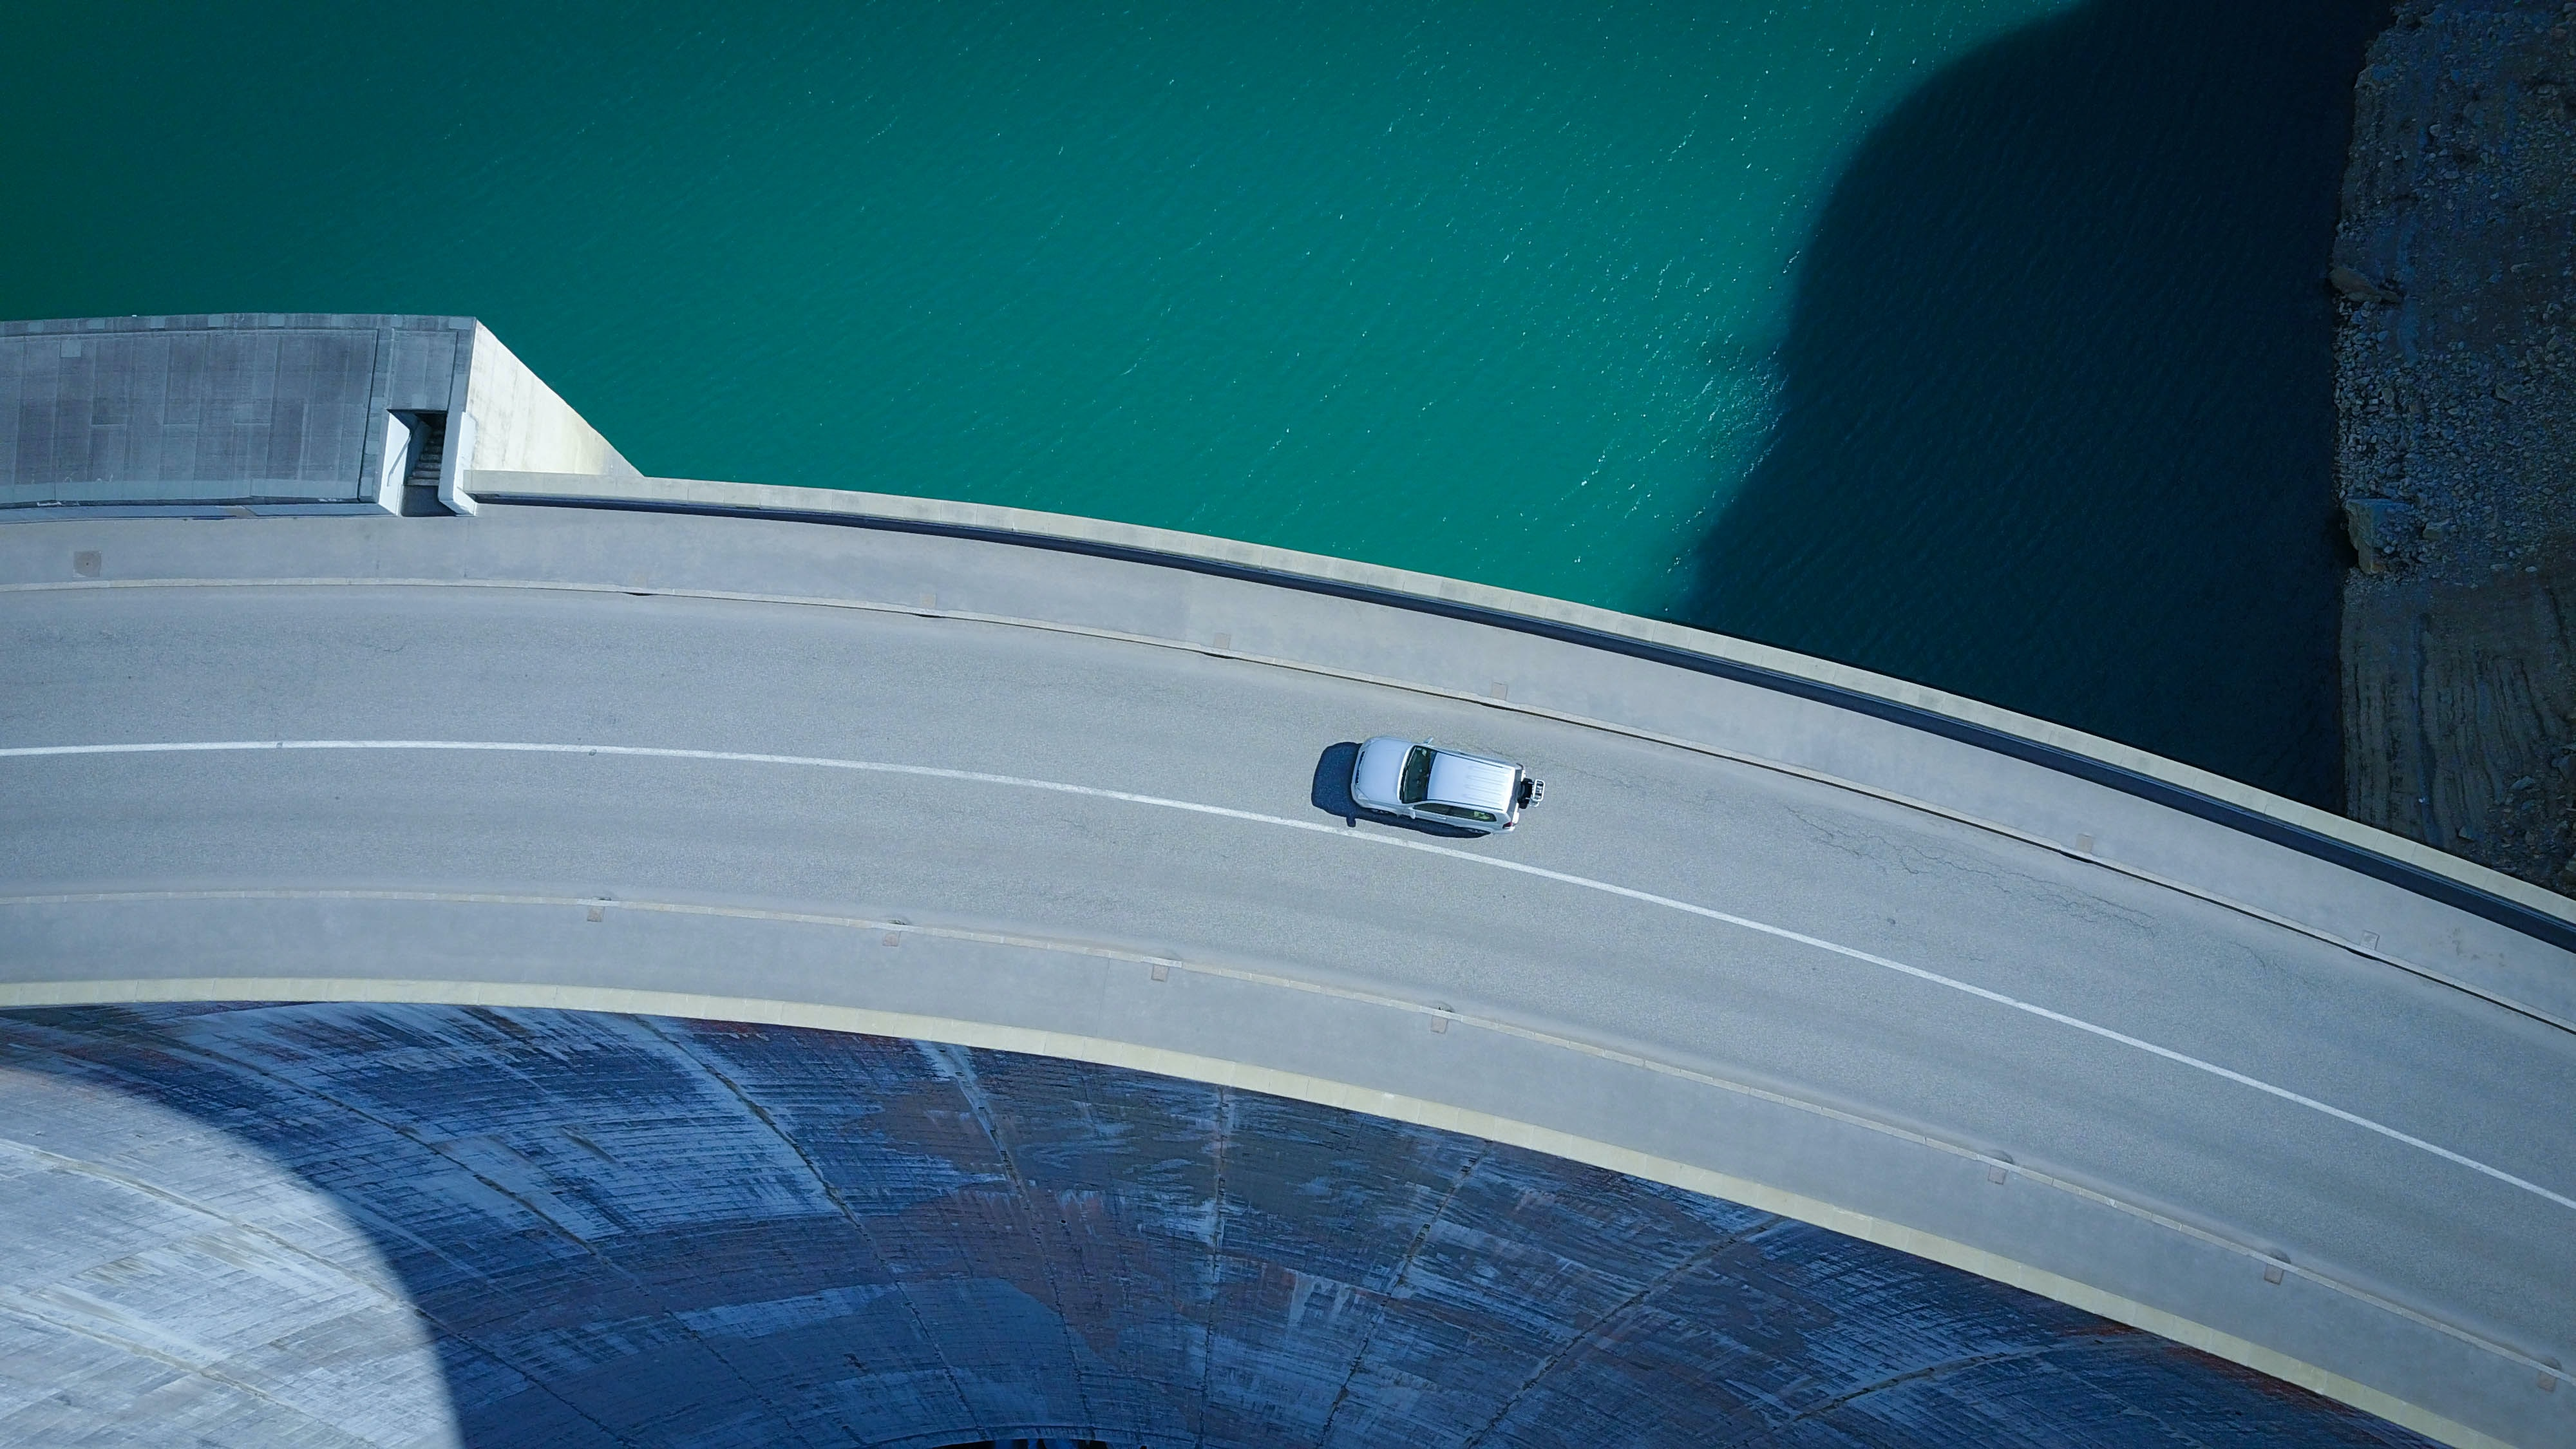 An aerial shot of a car driving along a curve in a road on a tall dam